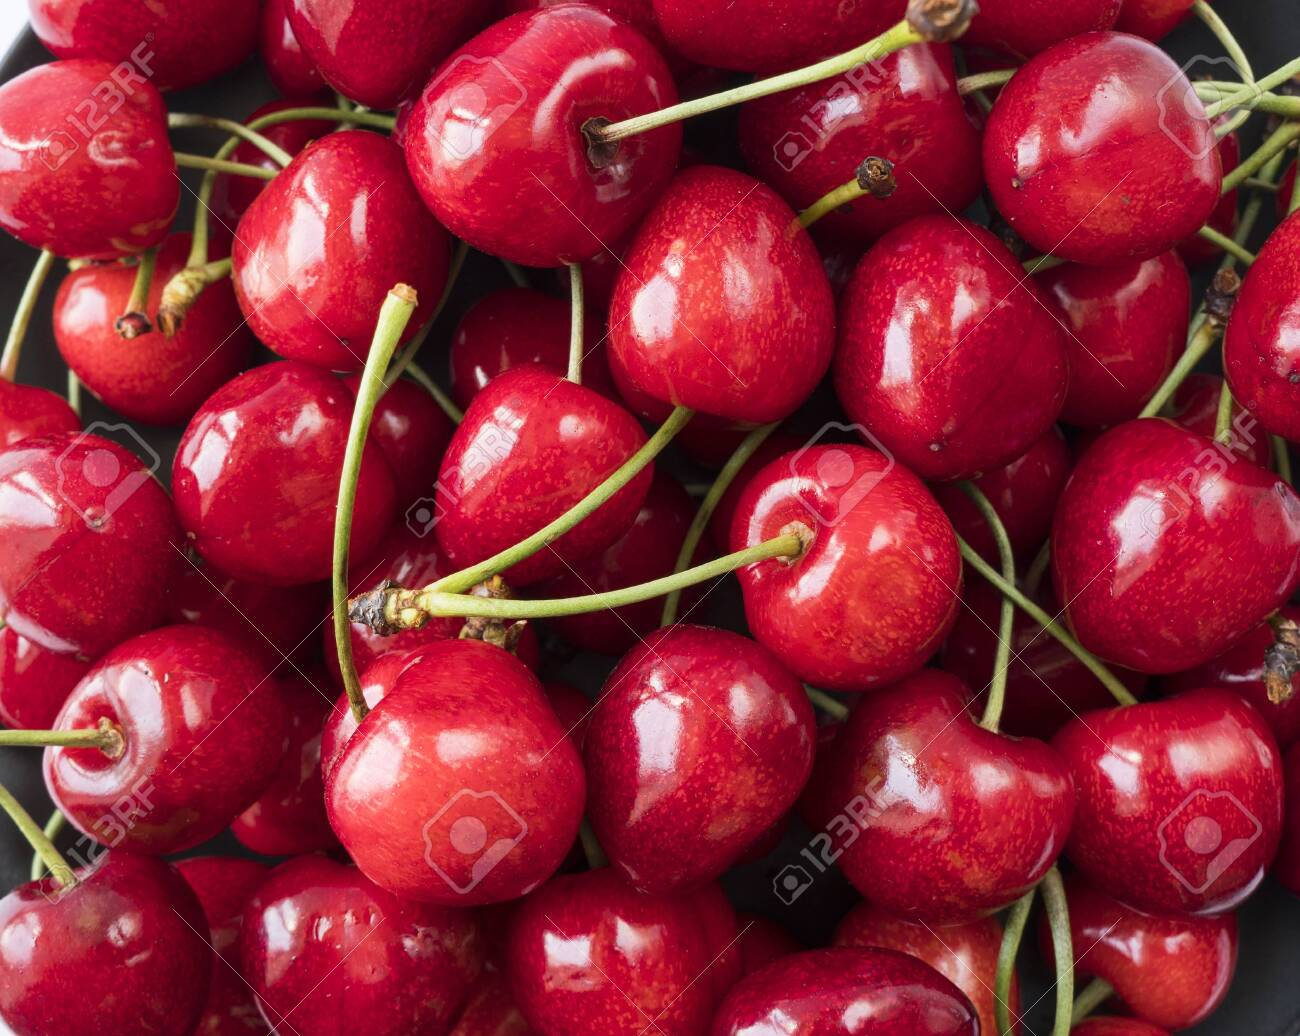 Fresh red cherries. Texture cherries fruits close up. Cherry fruit. Cherries with copy space for text. Top view. Background of cherries. - 125787631